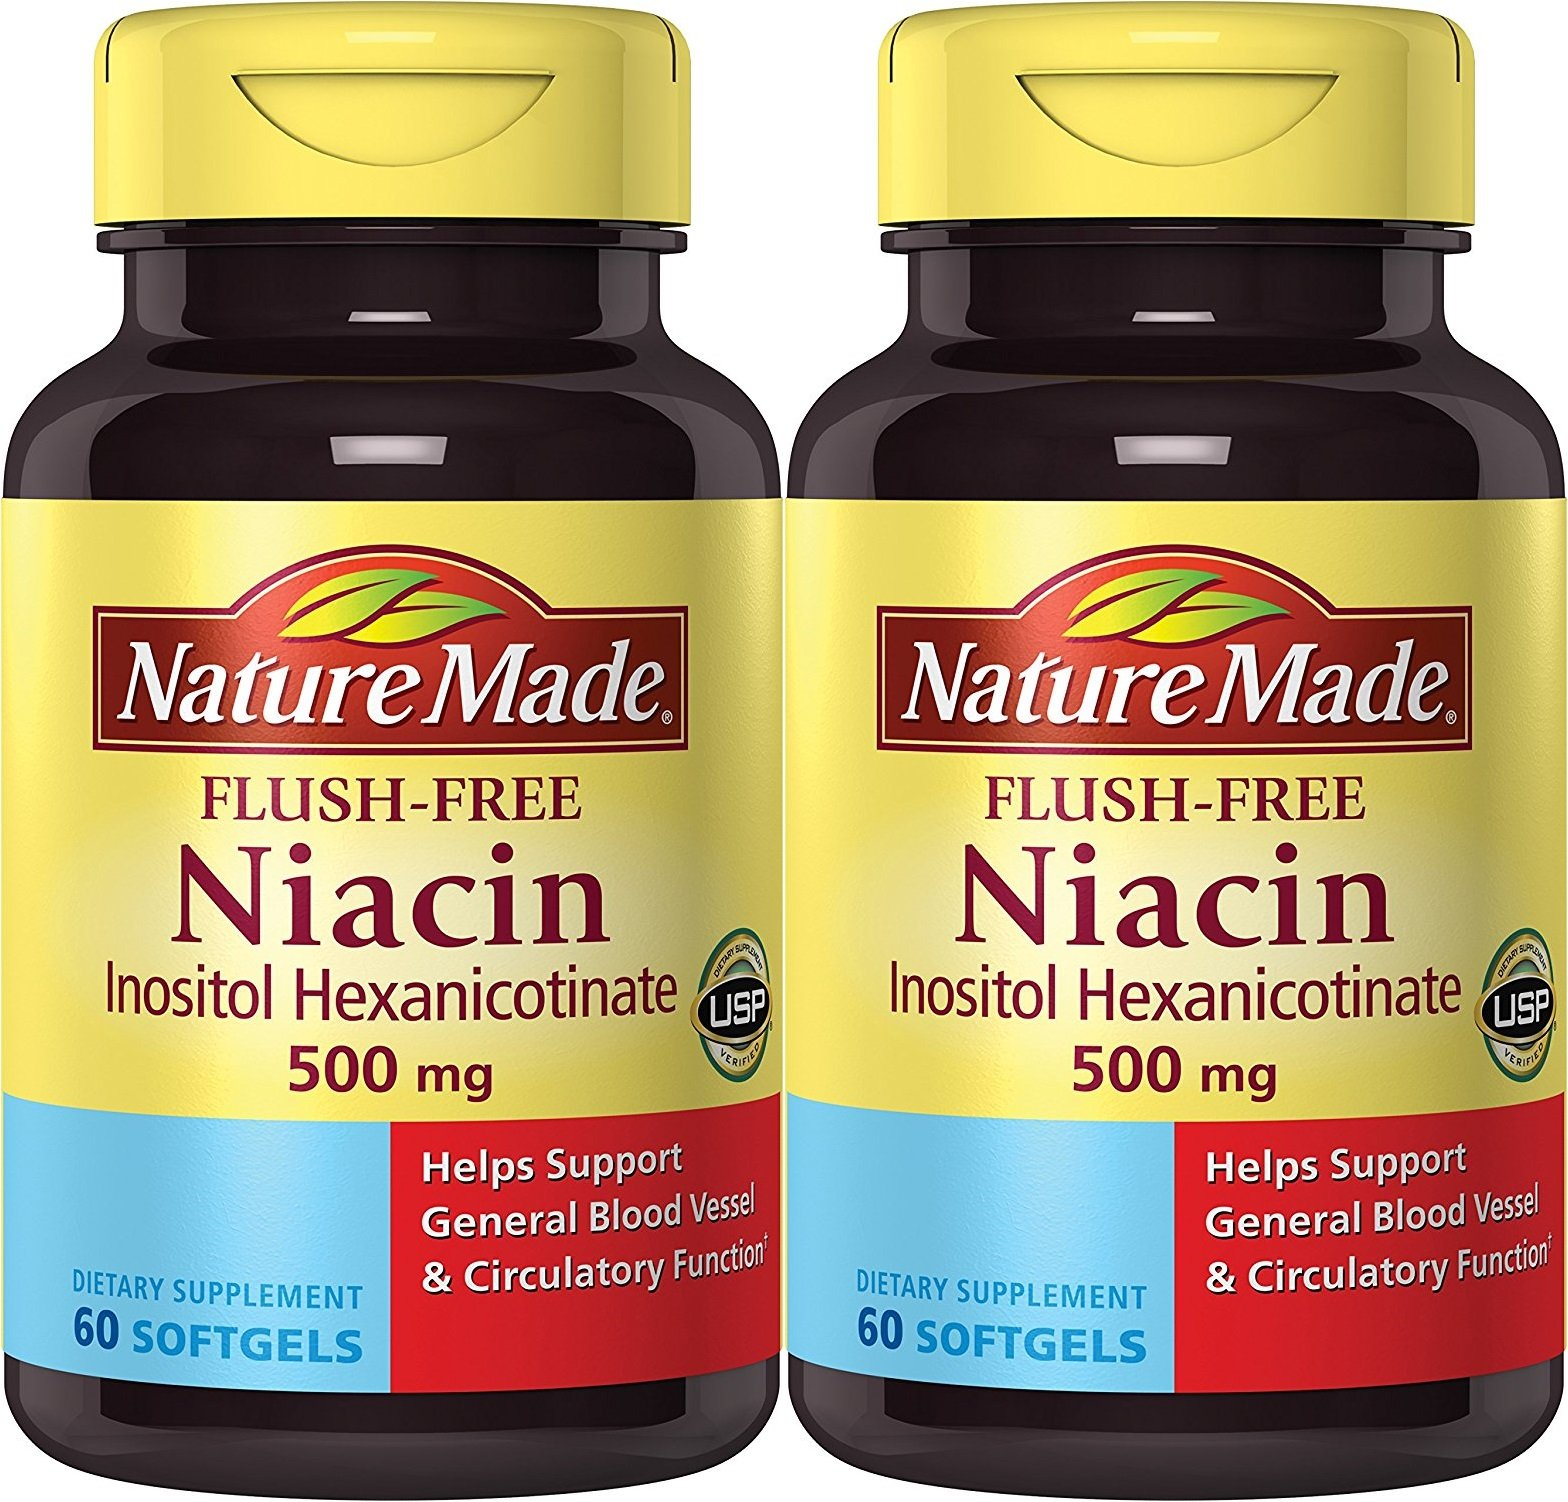 Nature Made Flush-Free Niacin (B3) 500 mg. 60 Softgels (Pack of 2)